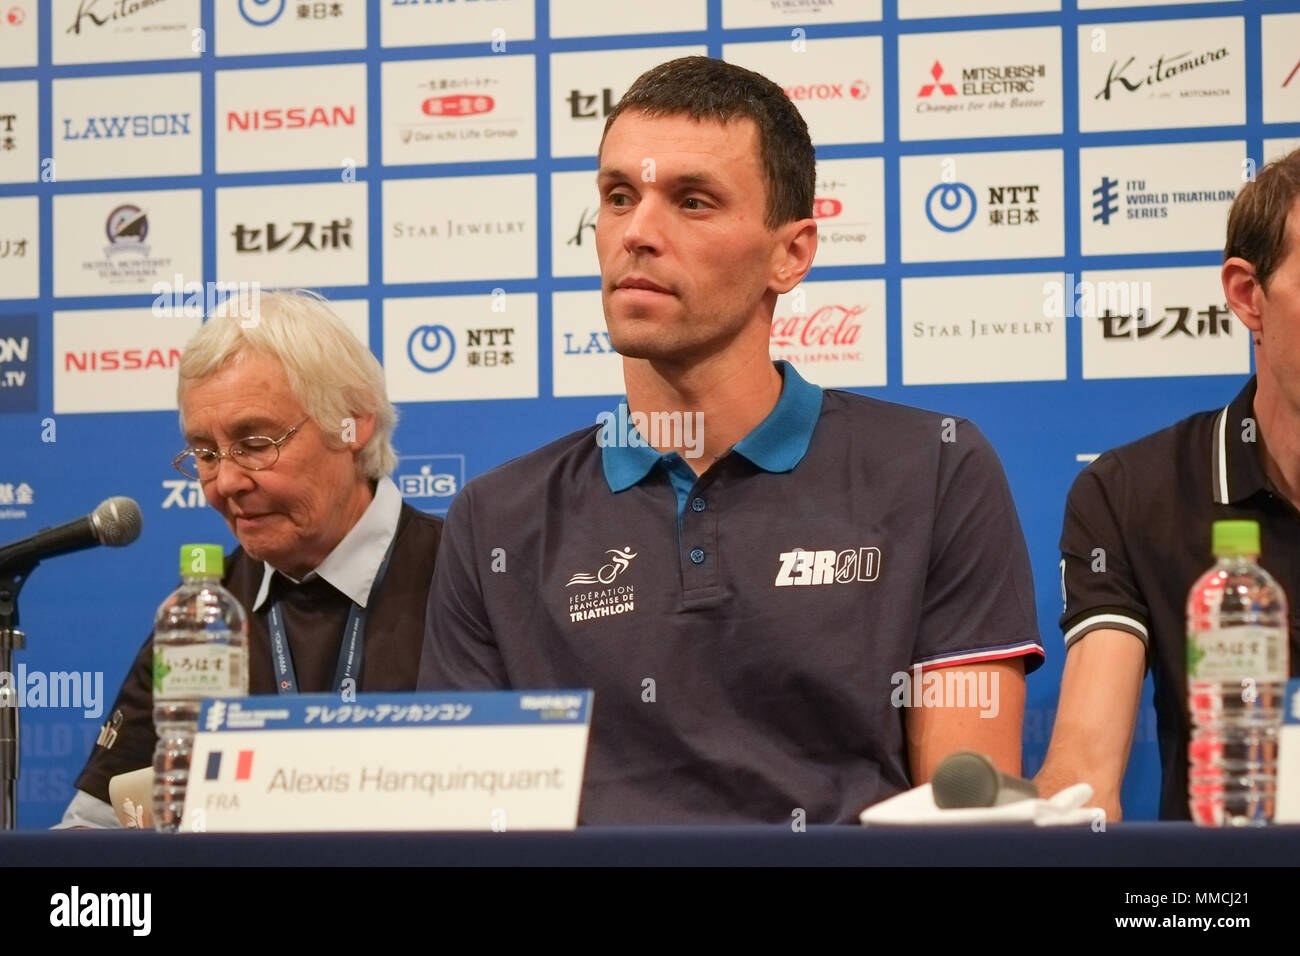 2018/05/10 Yokohama, Press Conference of the ITU World Triathlon Yokohama at the Monterey Hotel. Alexis Hanquinquant FRA (Photos by Michael Steinebach/AFLO) - Stock Image